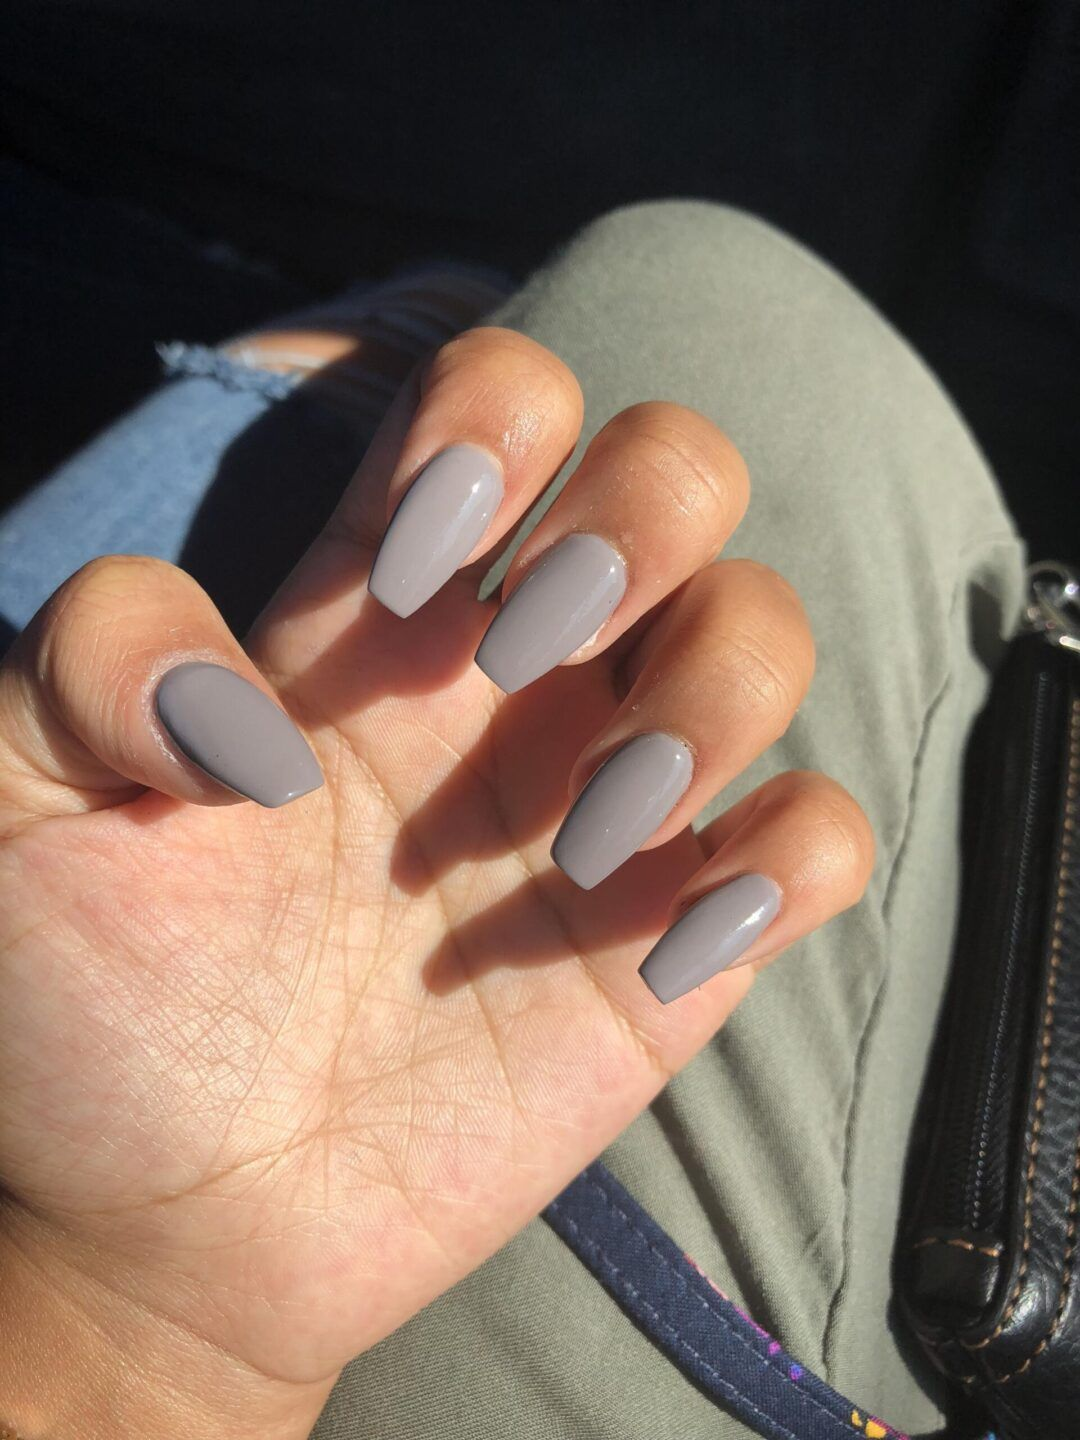 10 Popular Fall Nail Colors For 2019 An Unblurred Lady Acrylic Nails Coffin Short Grey Acrylic Nails Best Acrylic Nails